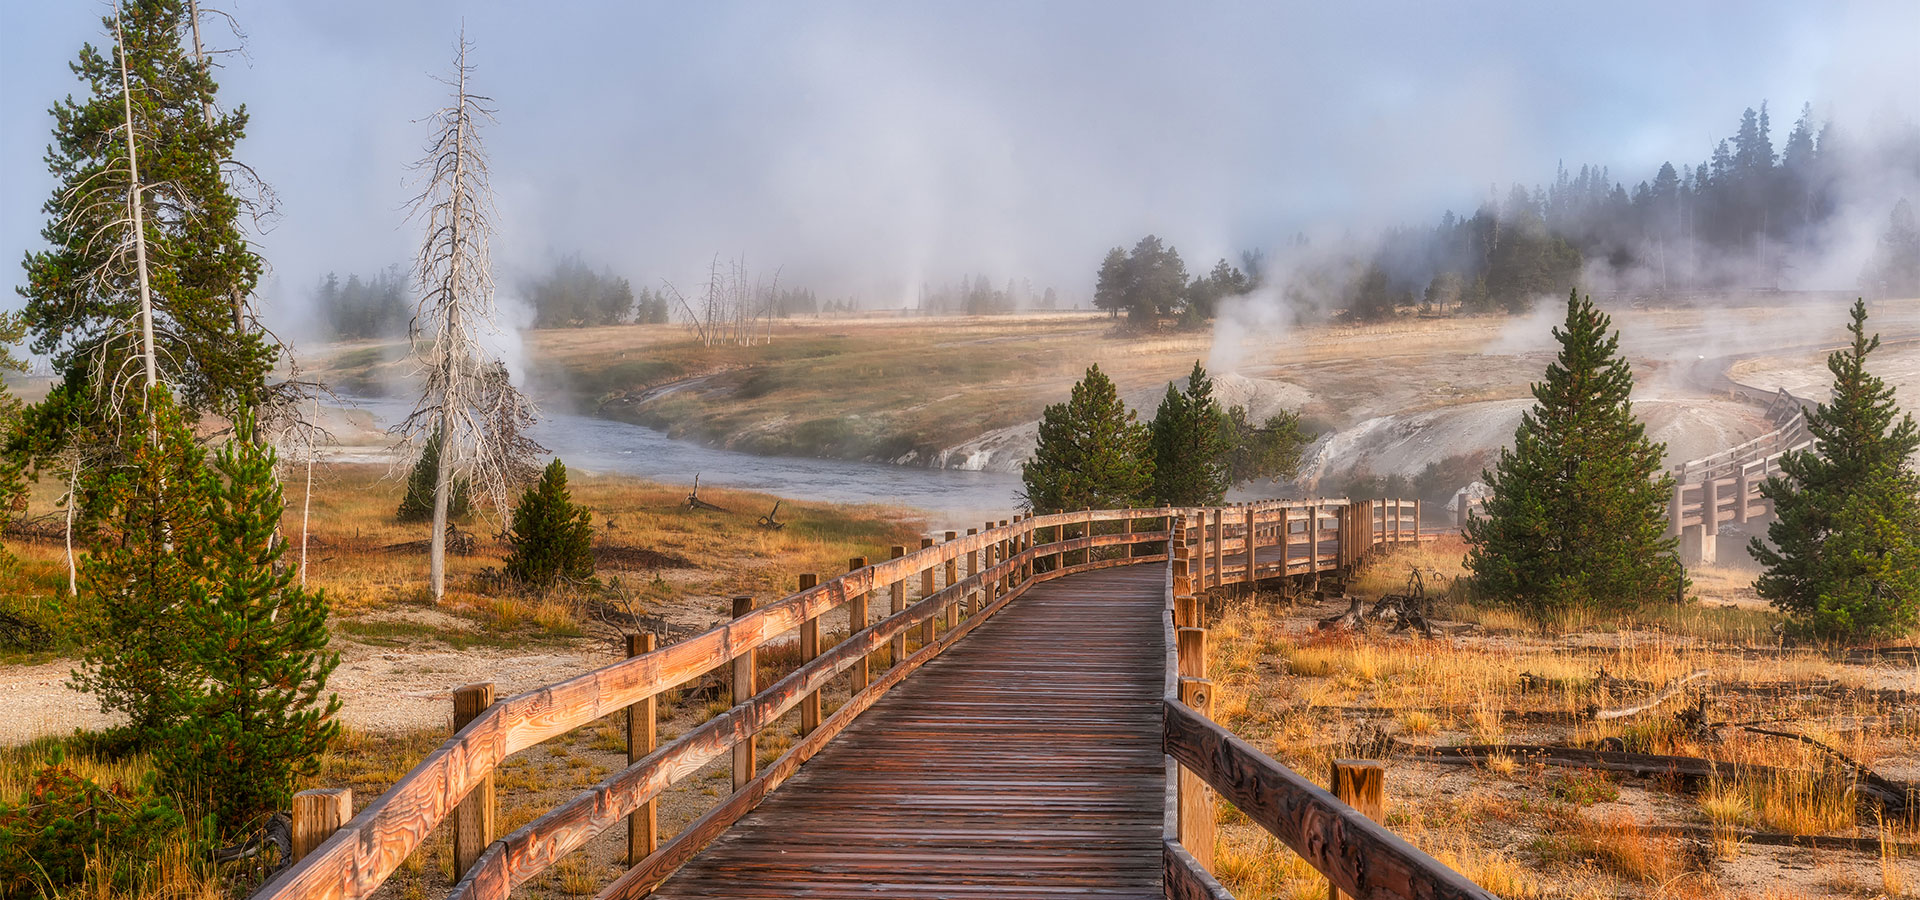 Foogy Morning in Yellowstone National Park